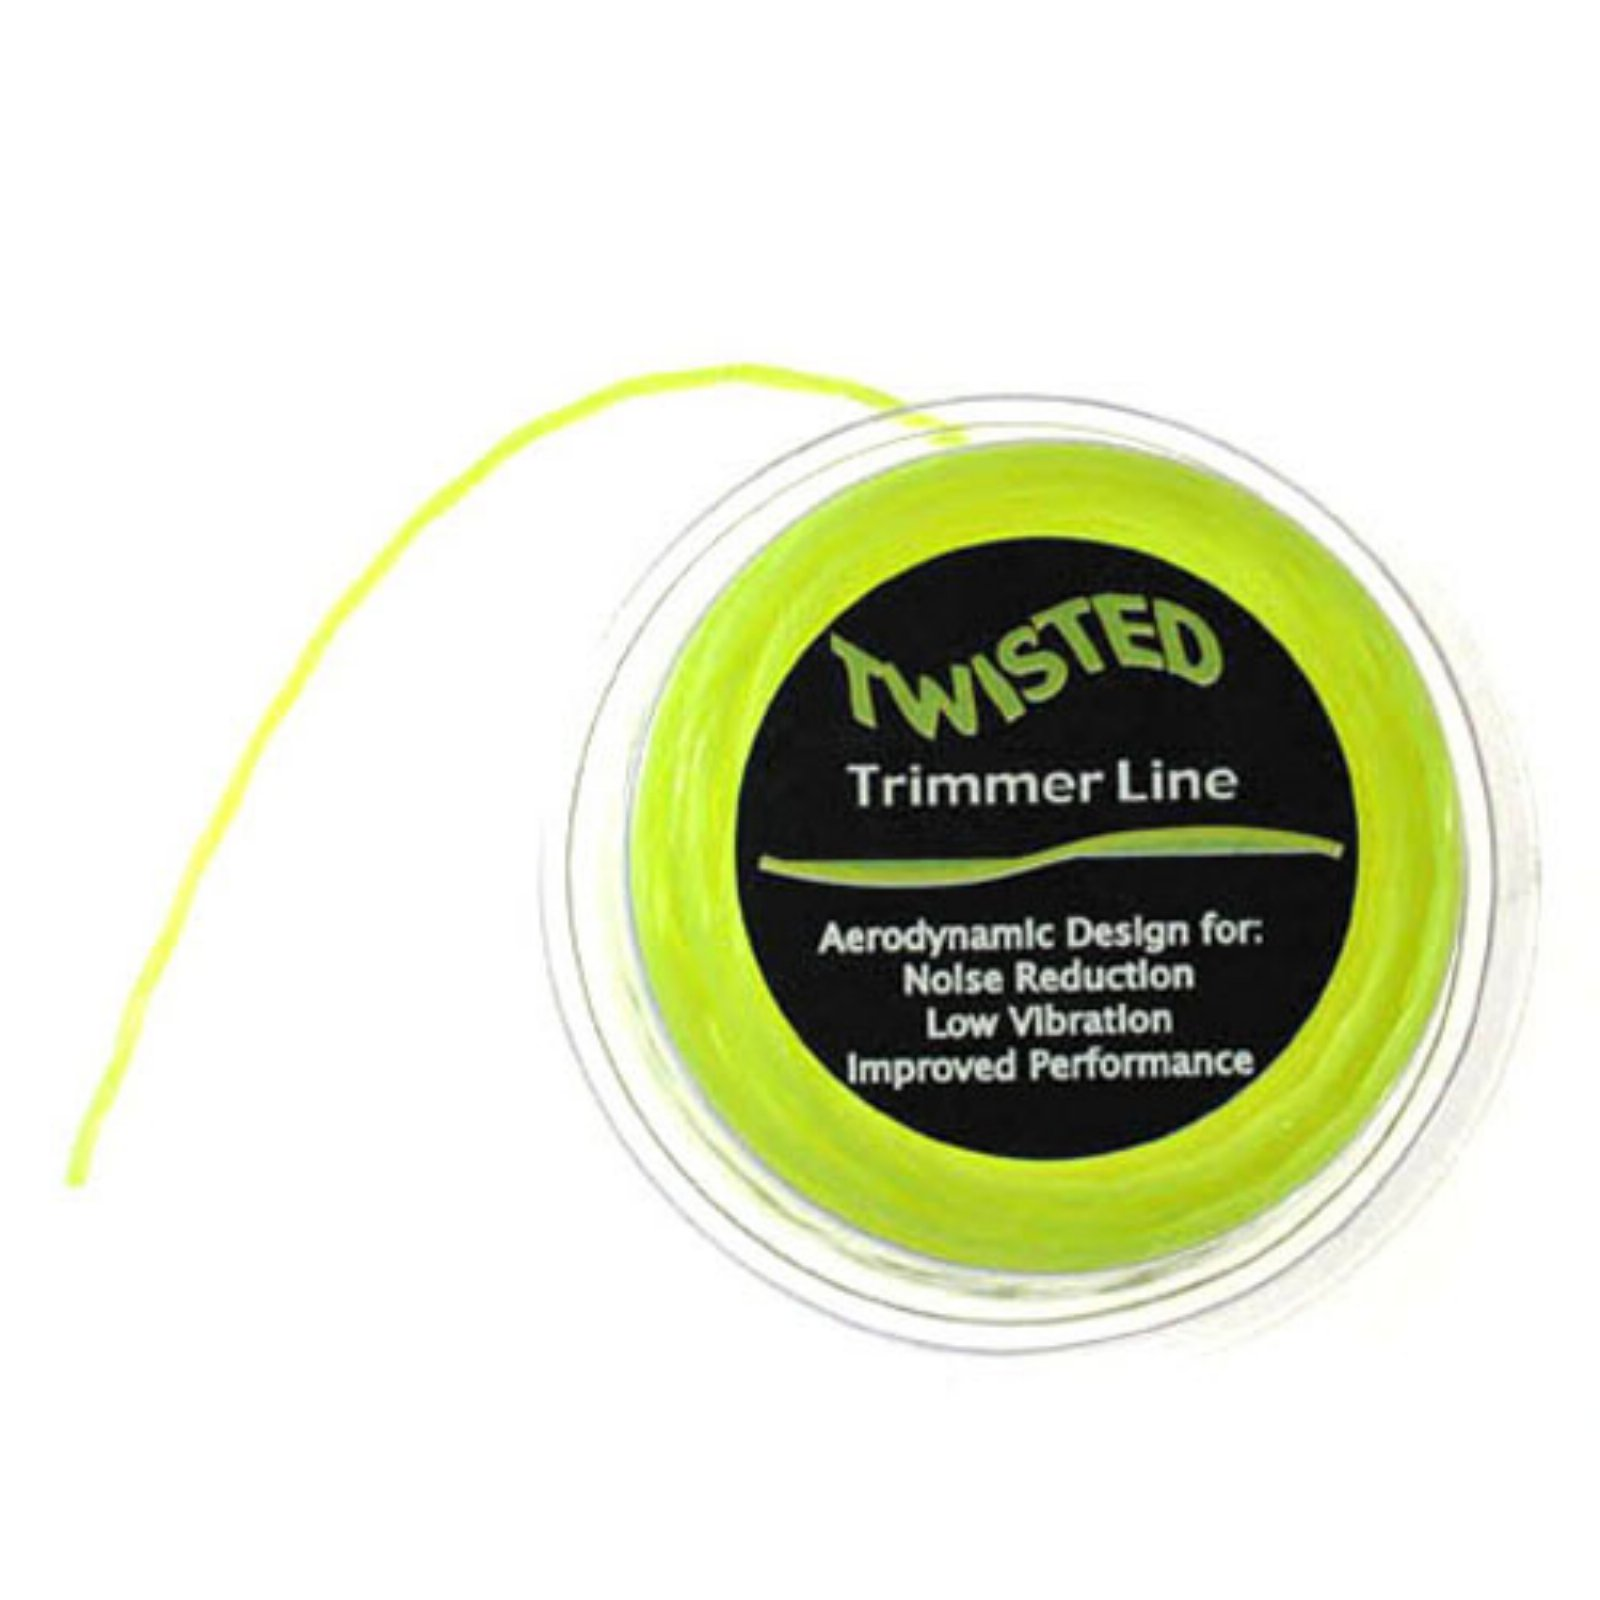 Maxpower 338808 .095 in x 100' Twisted Trimmer Line